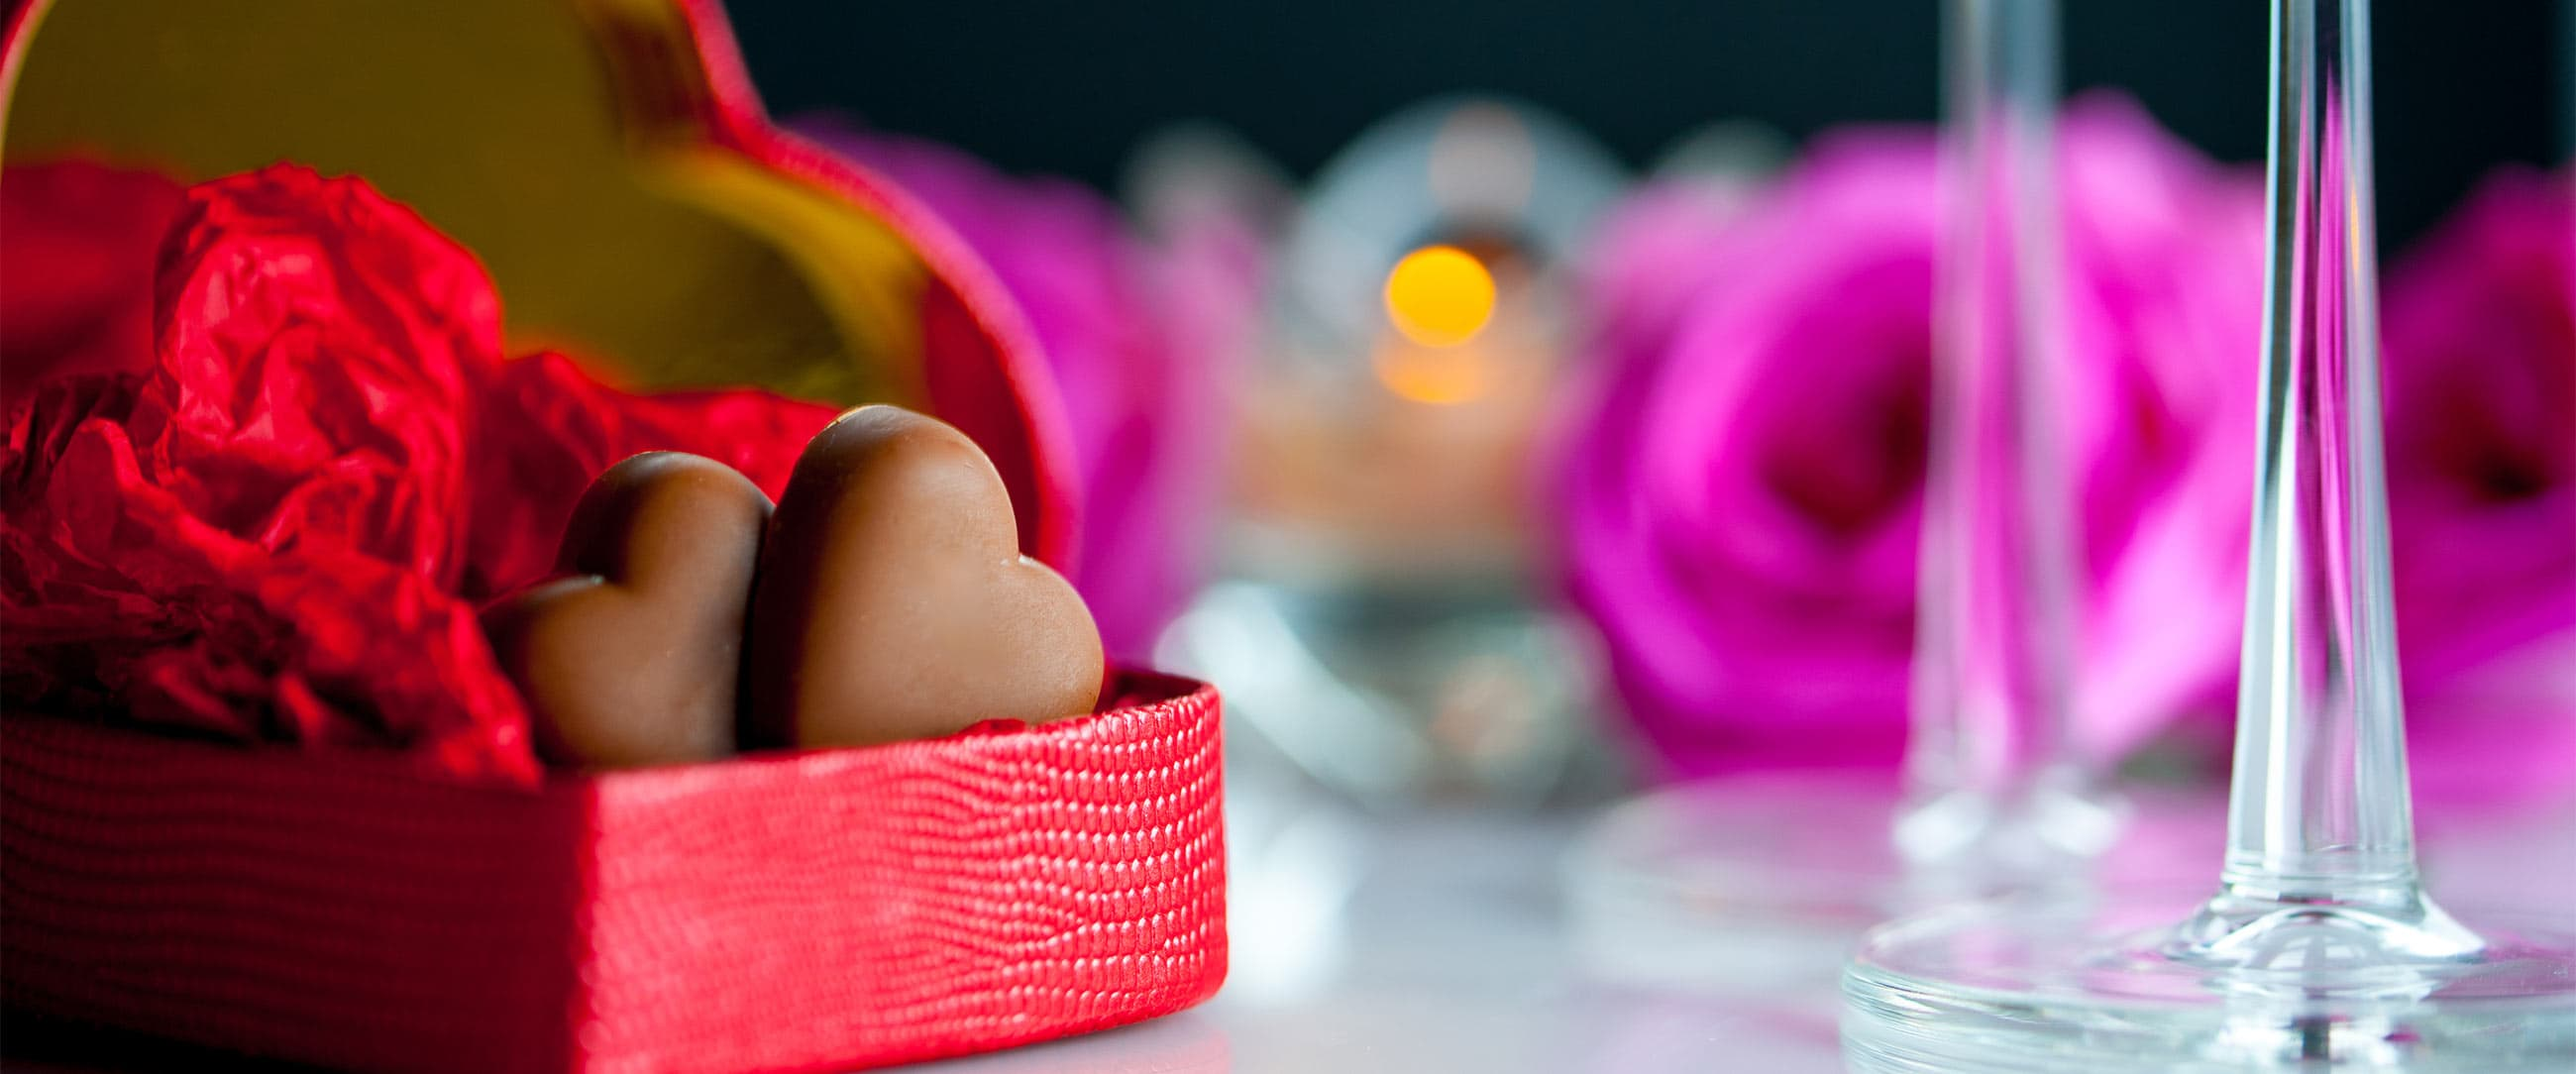 Chocolates in a red heart box with wine glass stems in background